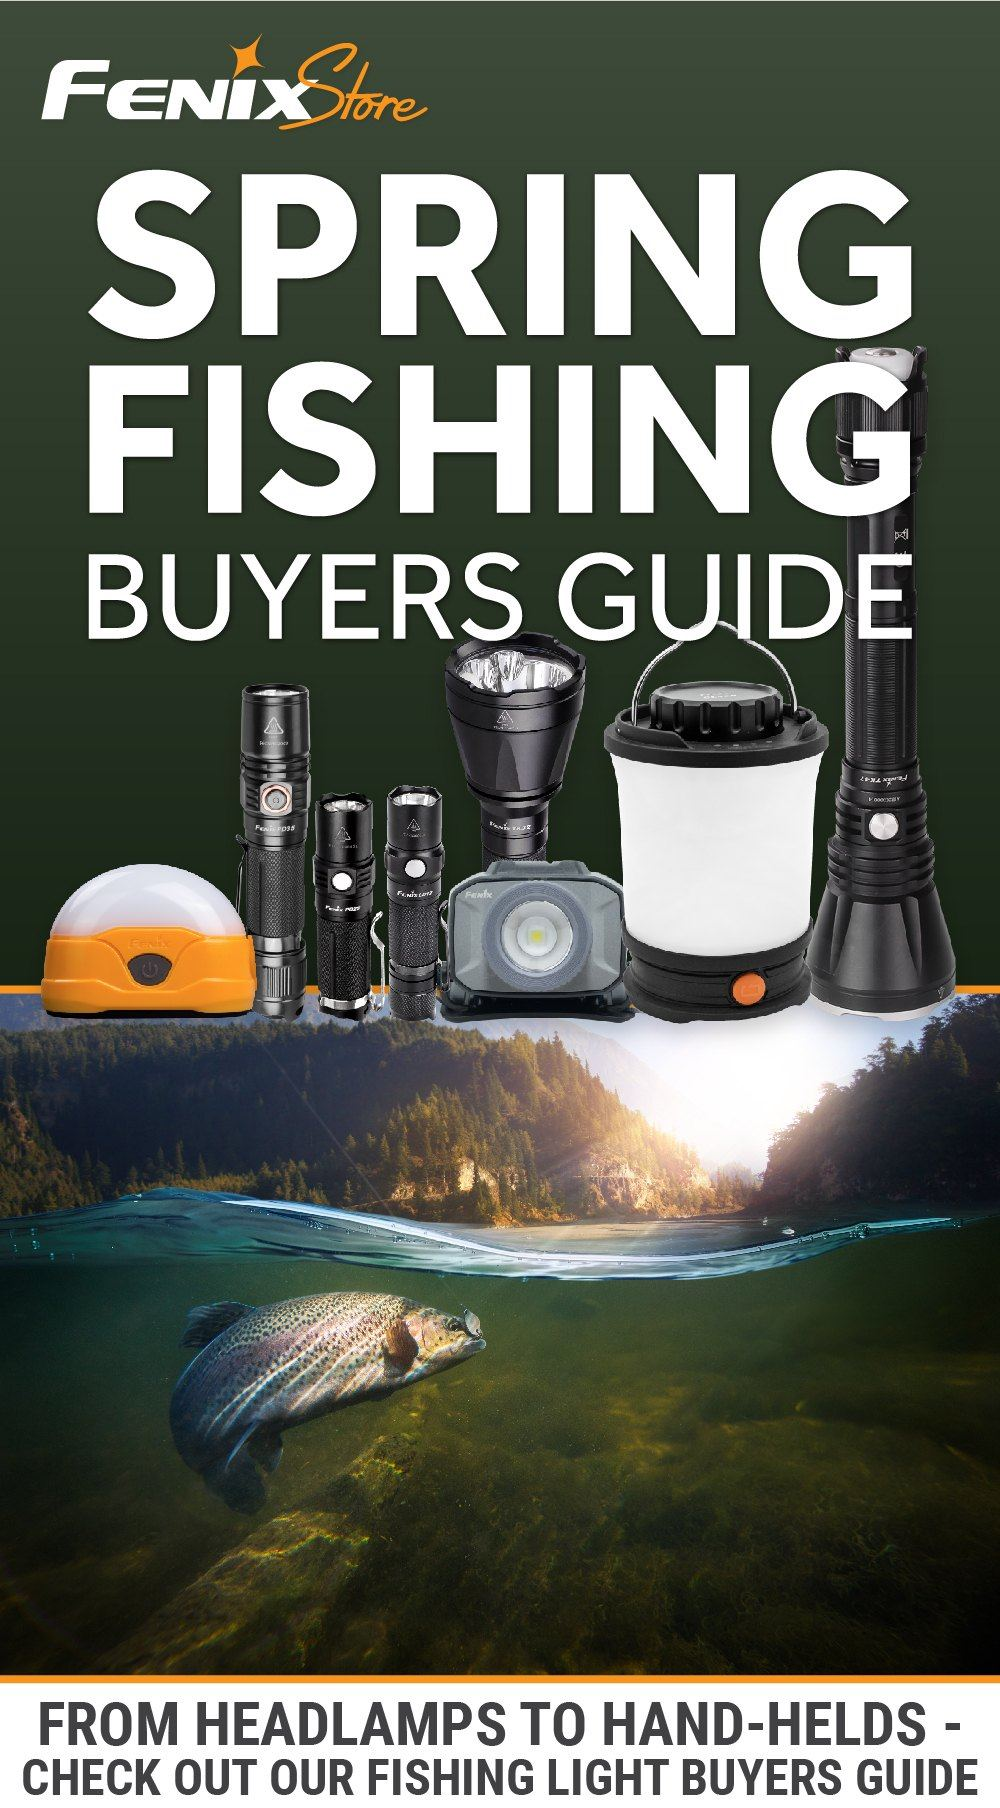 Fenix Store Spring Fenix Fishing Buyers